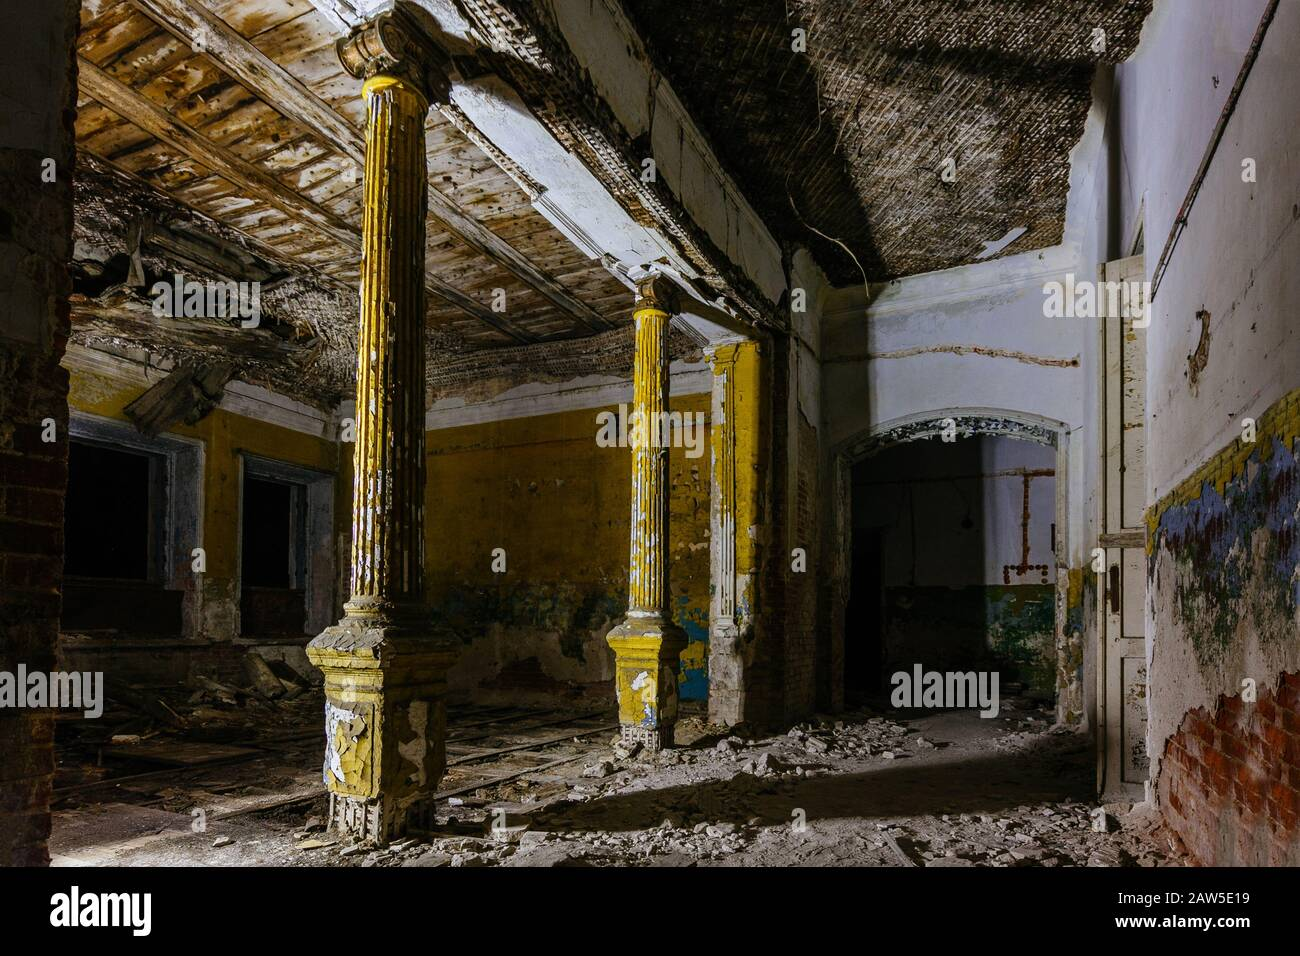 Dark And Creepy Old Abandoned Mansion Interior Former Karl Von Meck House Stock Photo Alamy